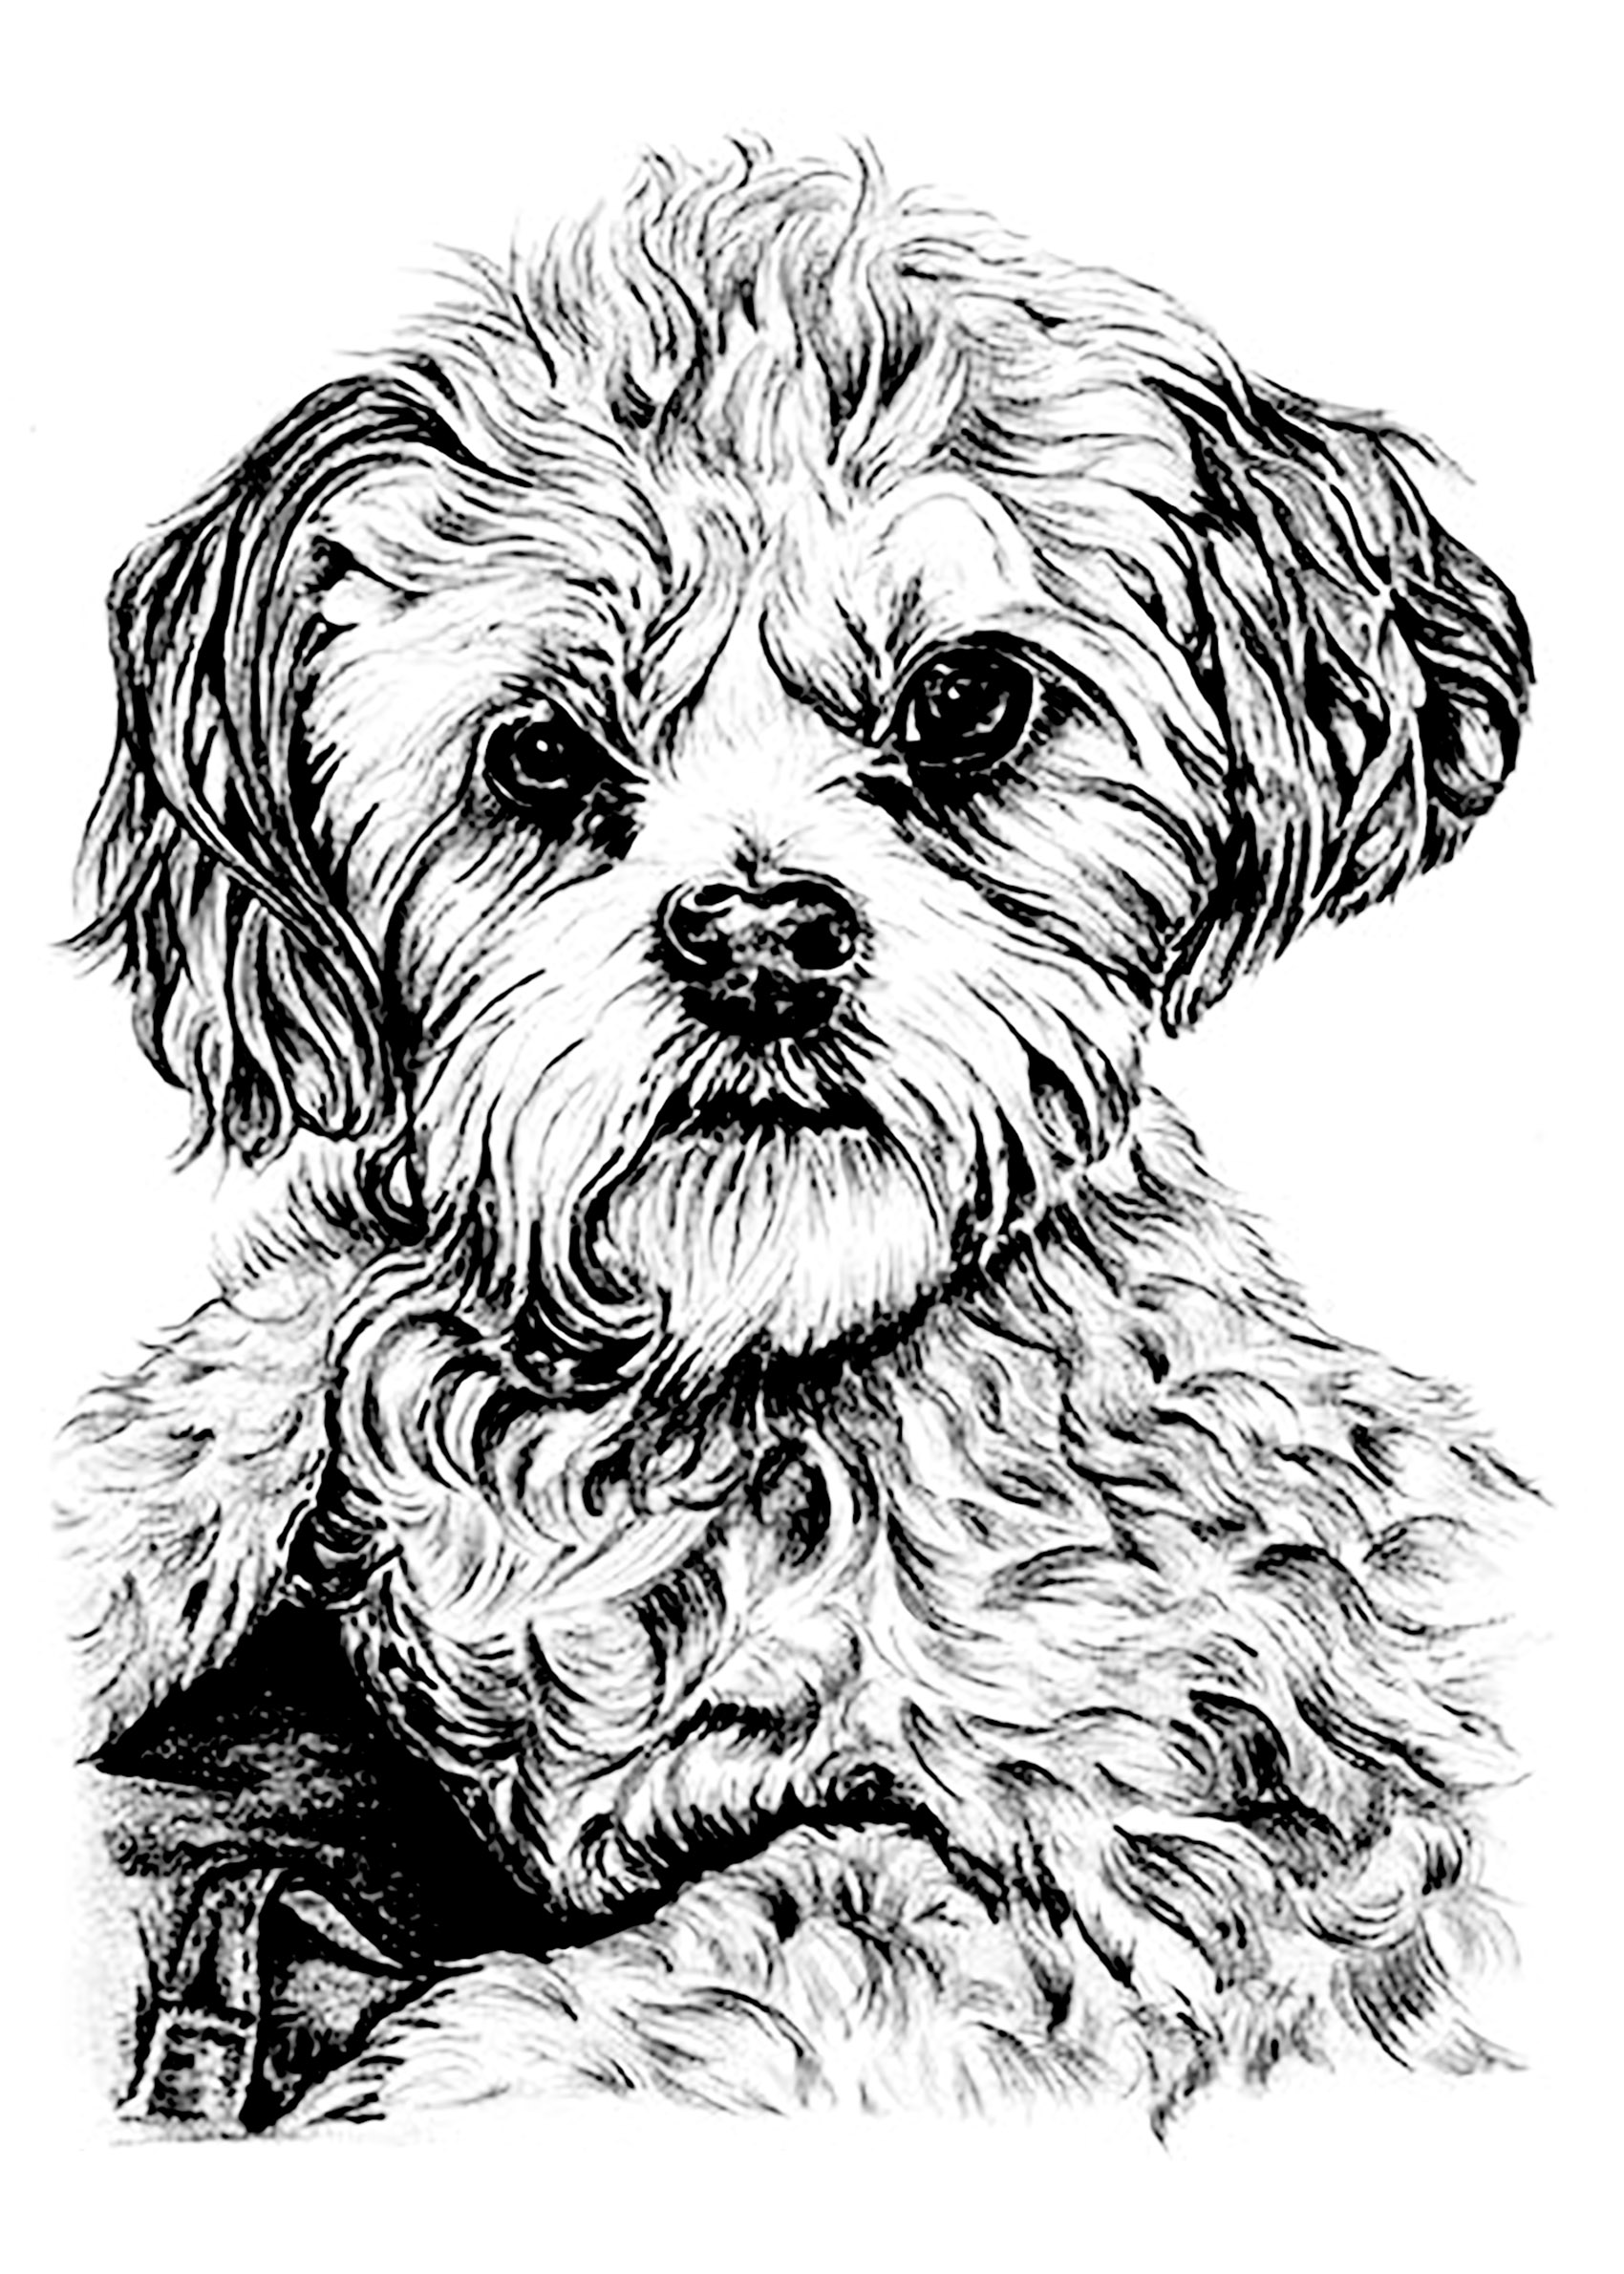 Dog - Dogs - Coloring pages for adults